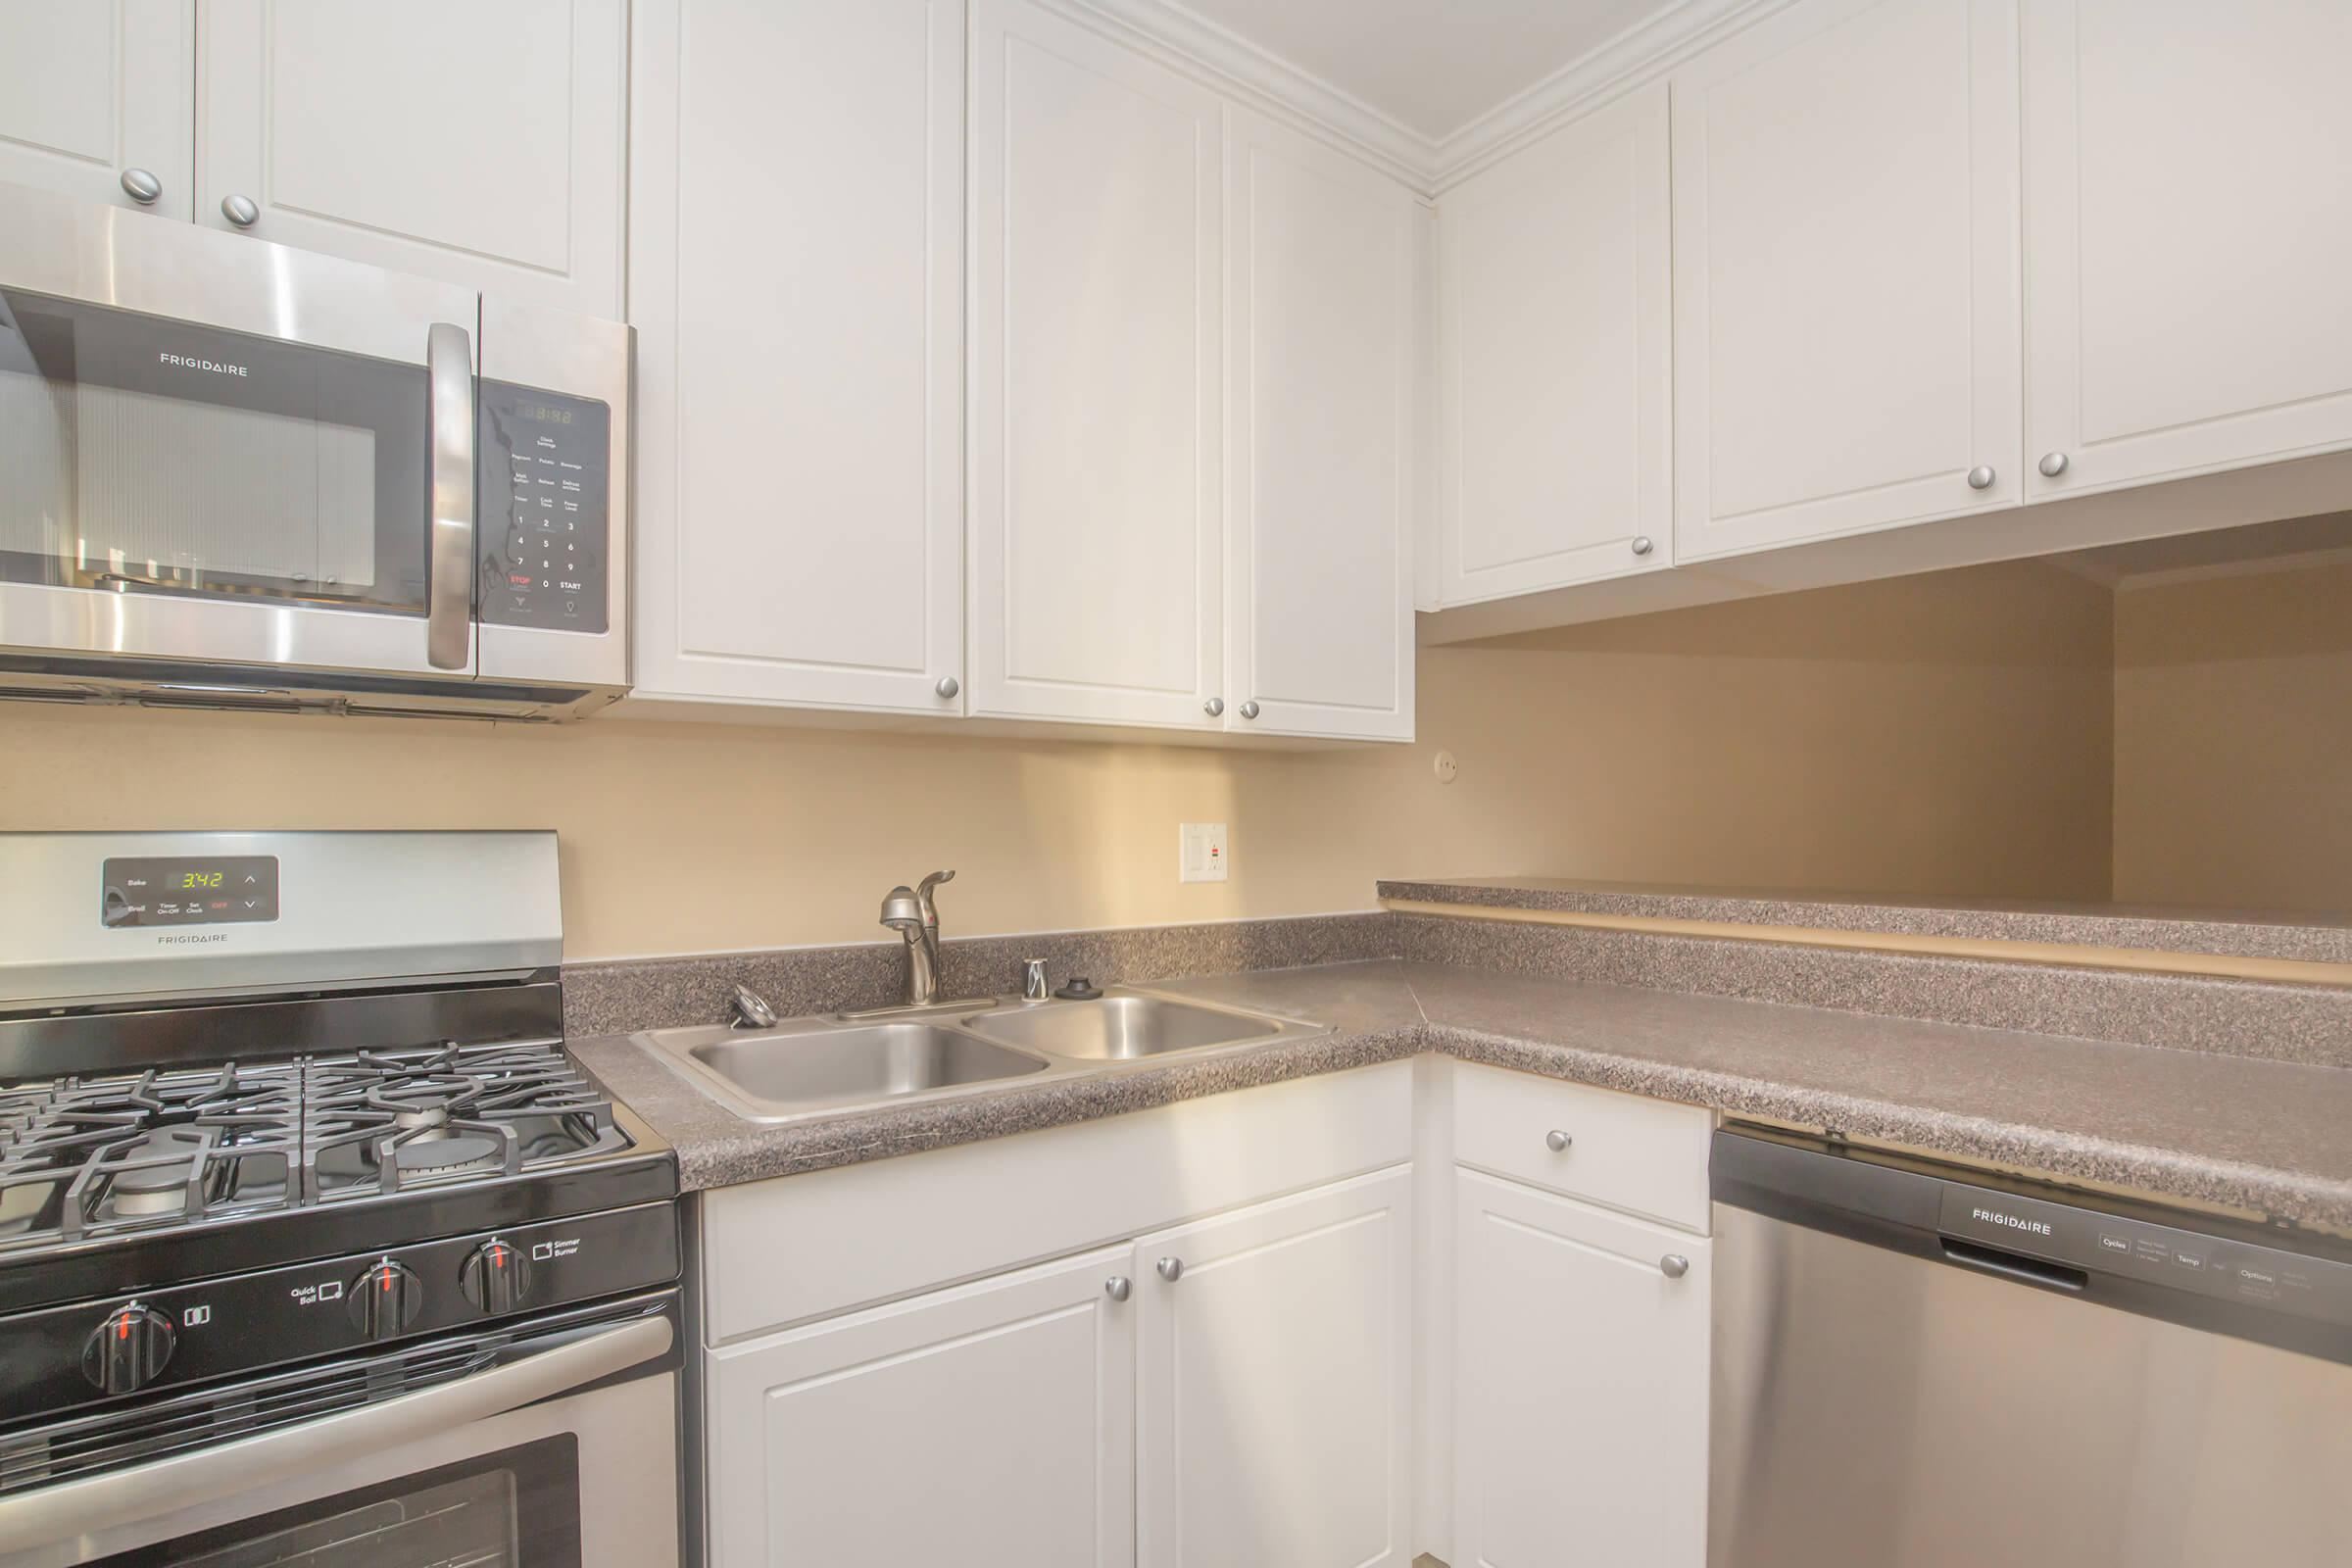 Kitchen with gas stove, dishwasher, microwave, and sink